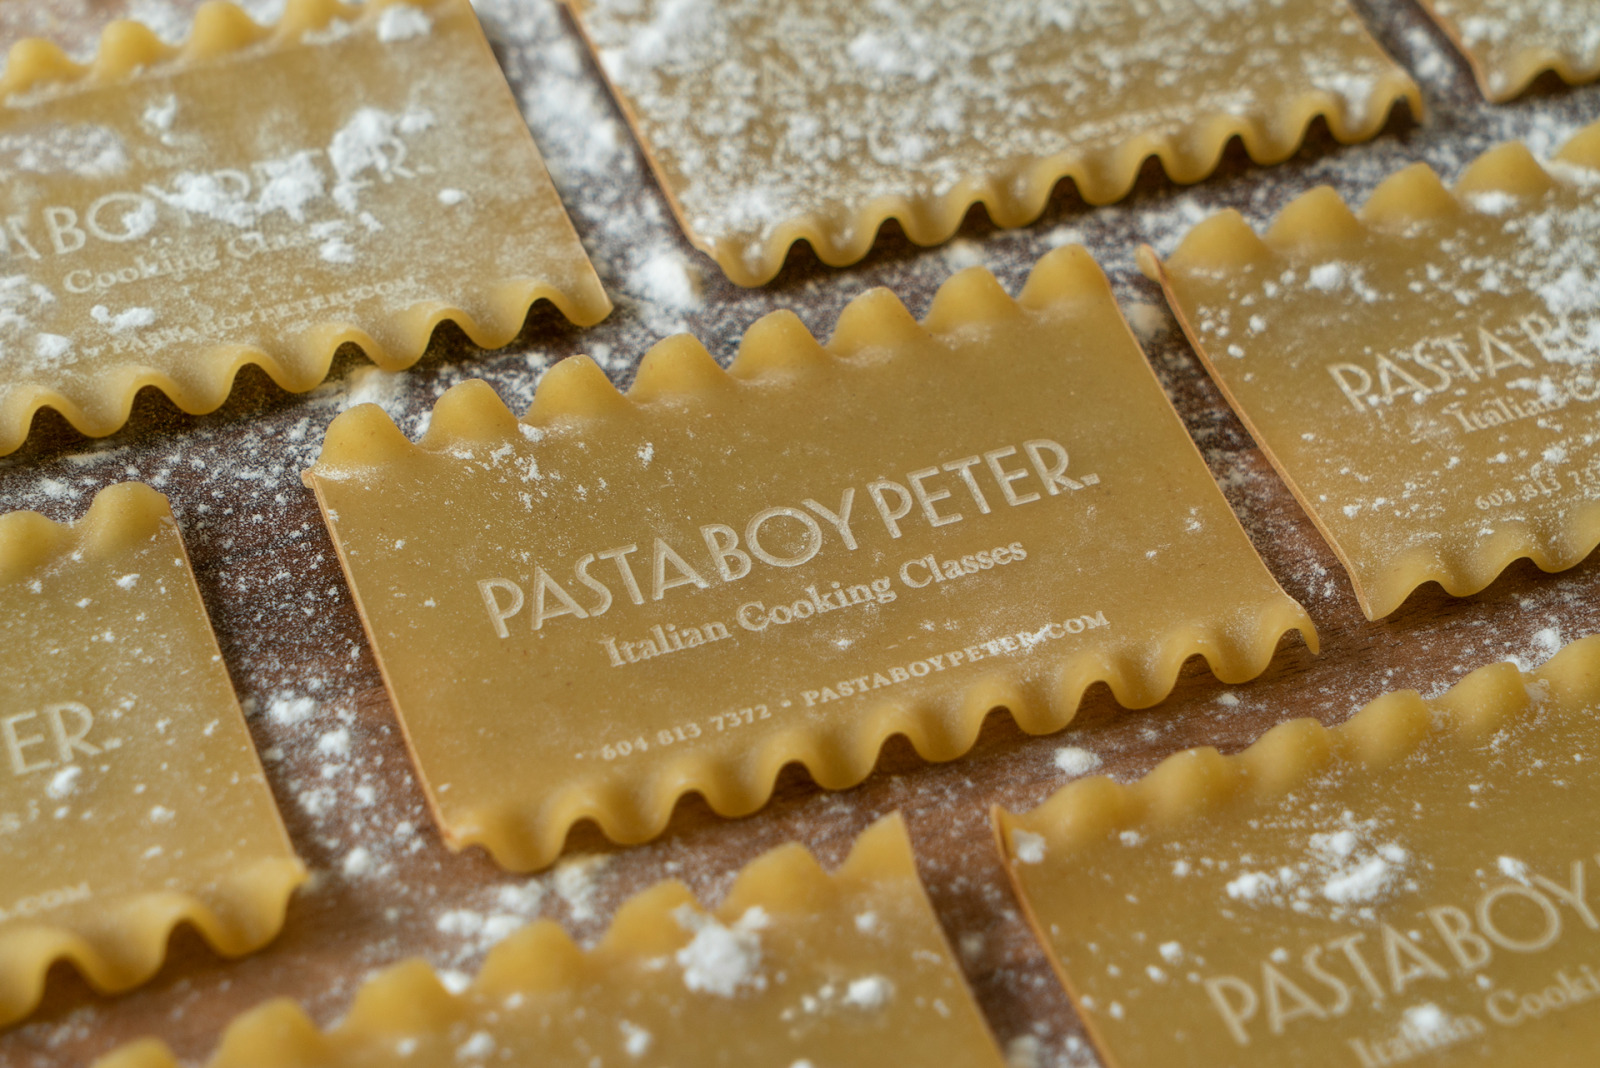 pasta boy business card